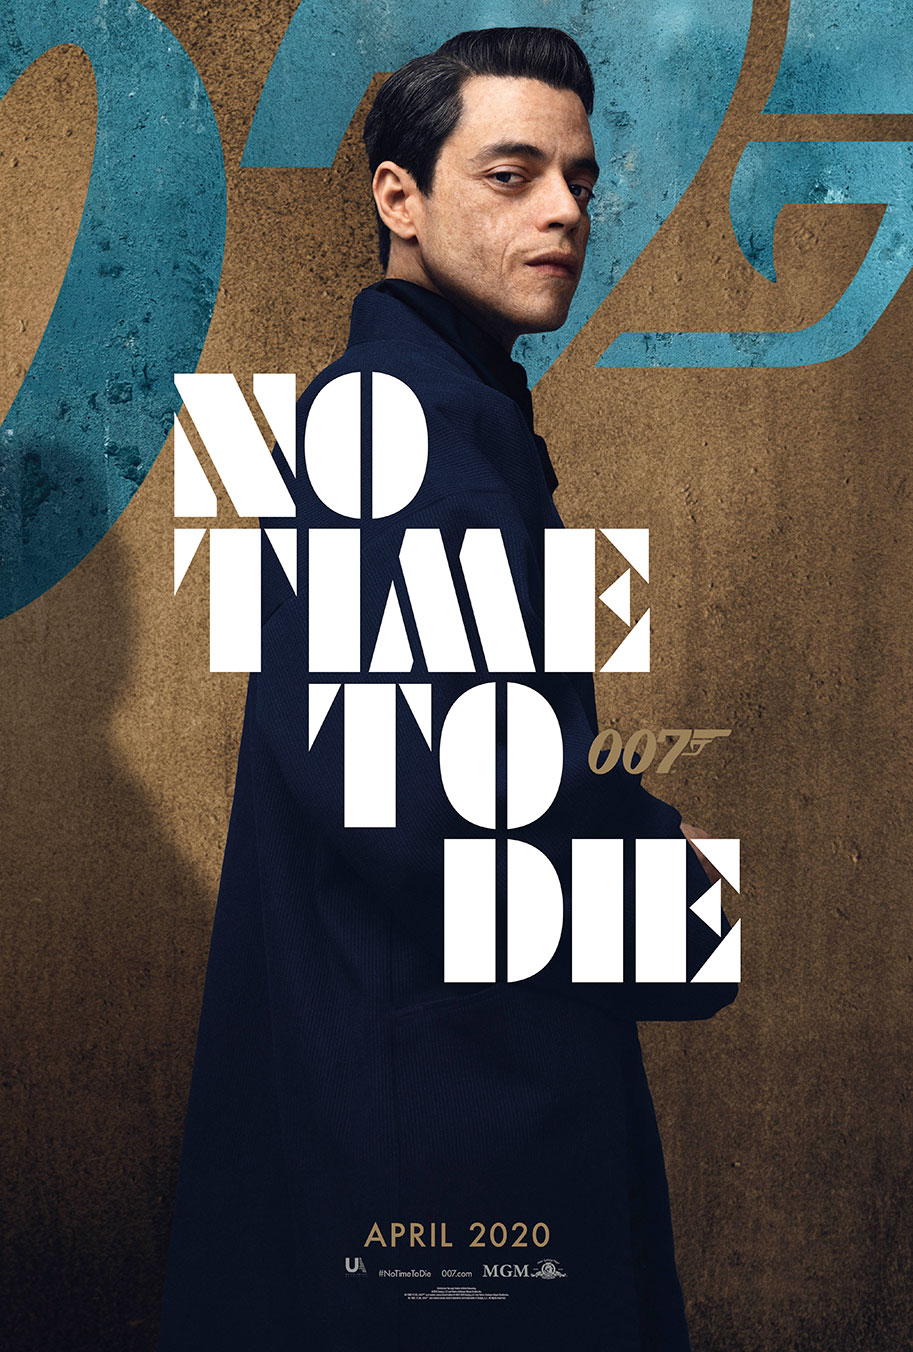 NO TIME TO DIE POSTER (#6 OF 12) - OKAY BHARGAV